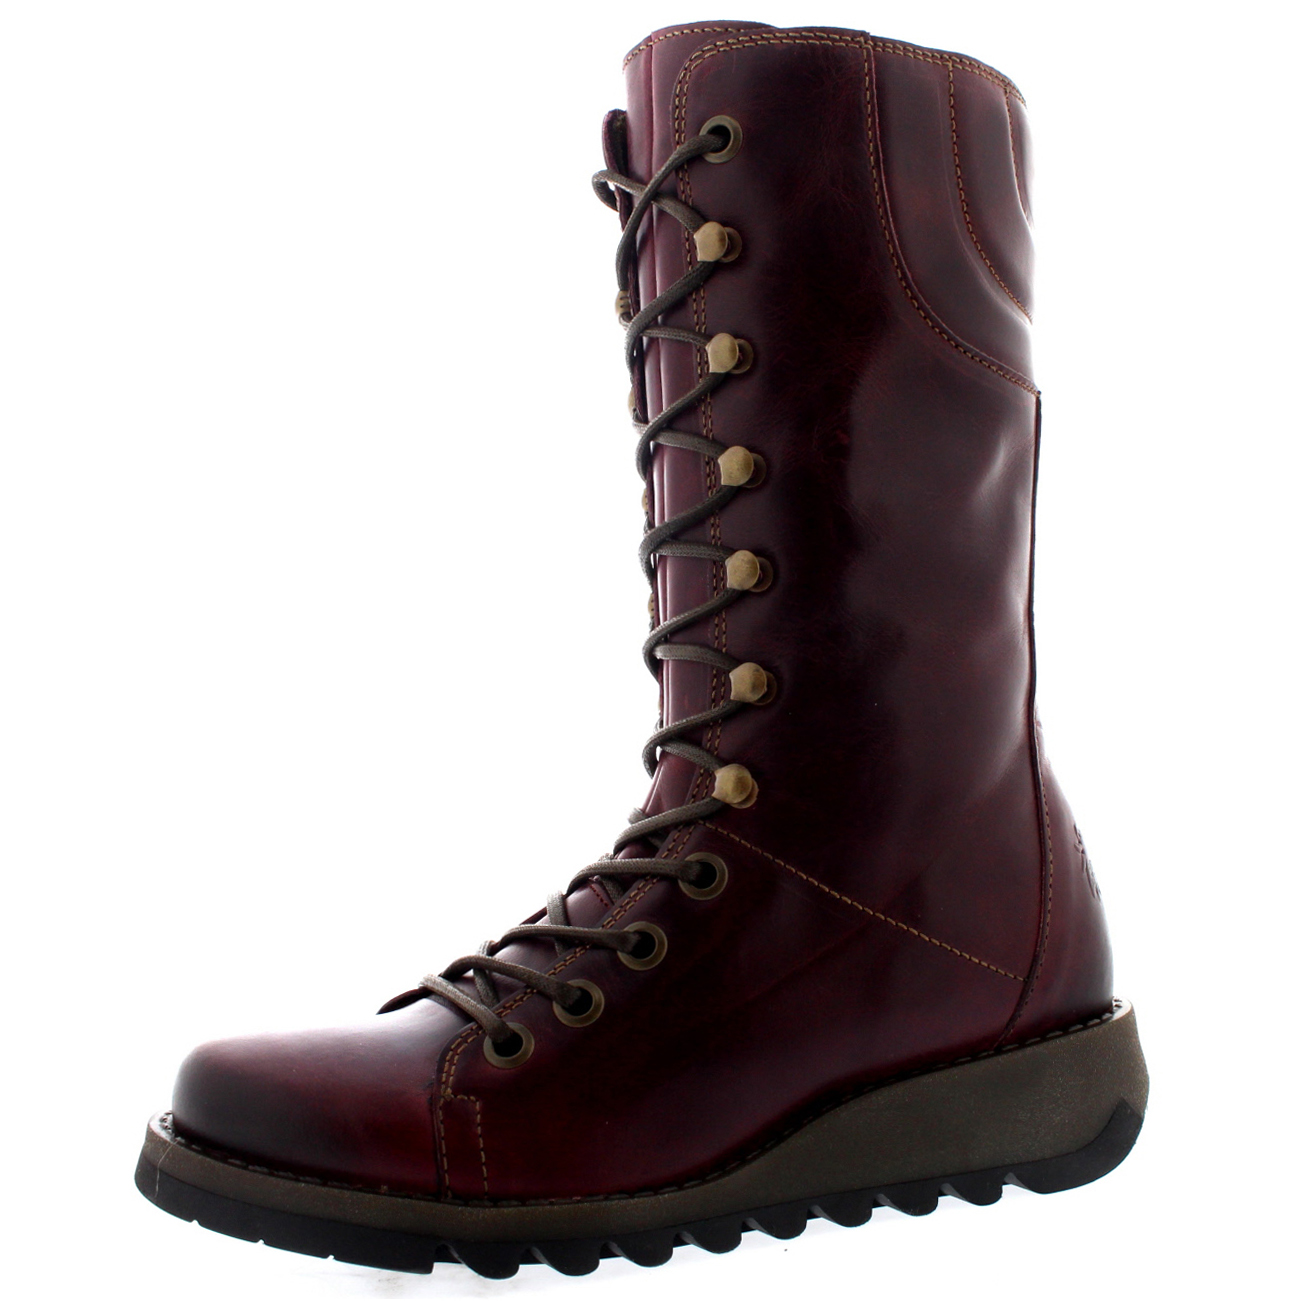 Enjoy free shipping and easy returns every day at Kohl's. Find great deals on Womens Leather Boots at Kohl's today!